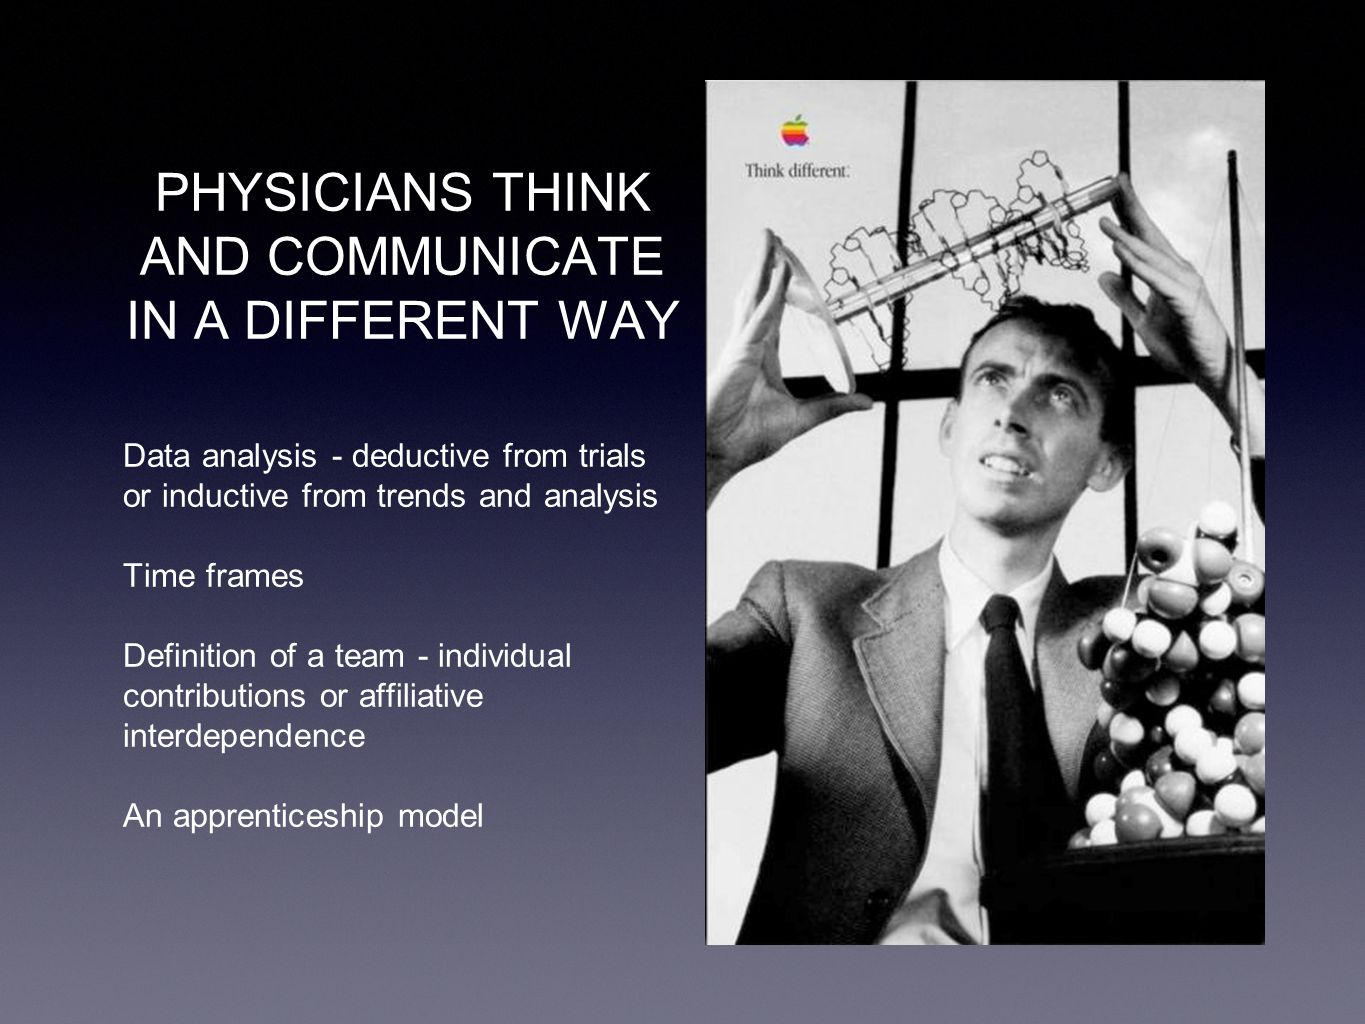 PHYSICIANS THINK AND COMMUNICATE IN A DIFFERENT WAY Data analysis - deductive from trials or inductive from trends and analysis Time frames Definition of a team - individual contributions or affiliative interdependence An apprenticeship model